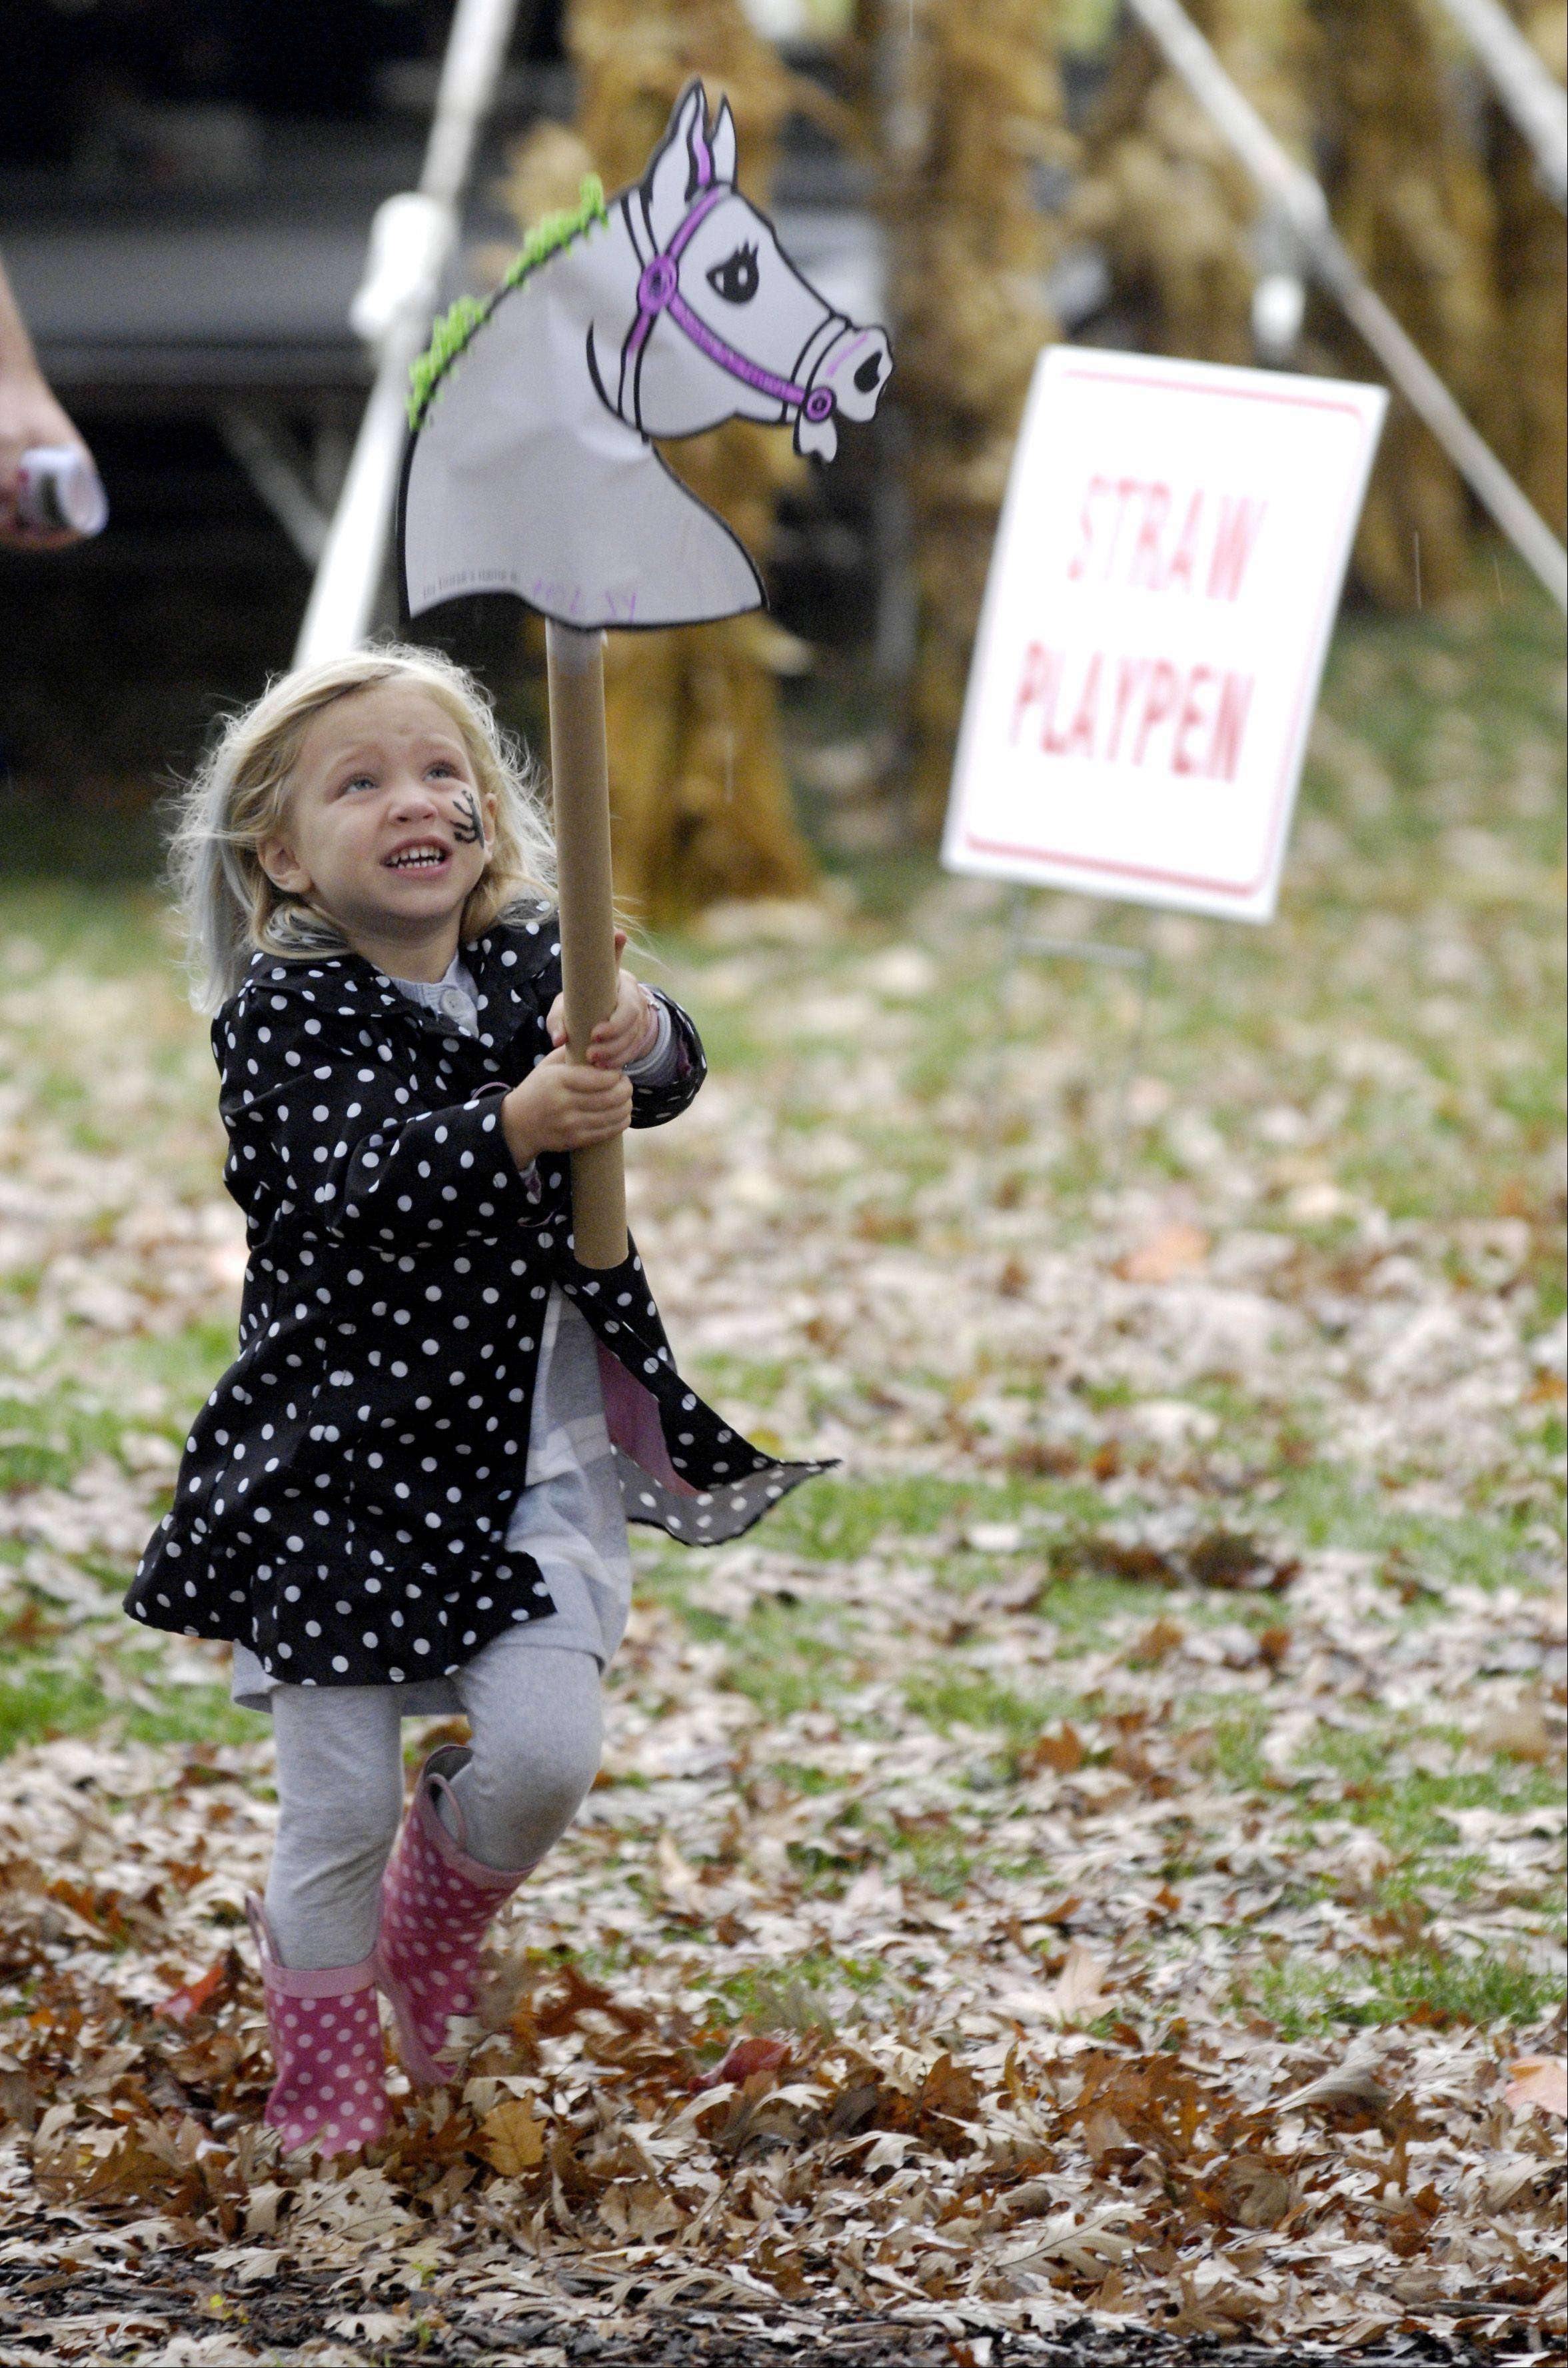 Amanda Gray, 3, of Naperville plays with the hobby horse she made while visiting the Forest Preserve District of DuPage County's annual Danada Fall Festival Sunday in Wheaton.